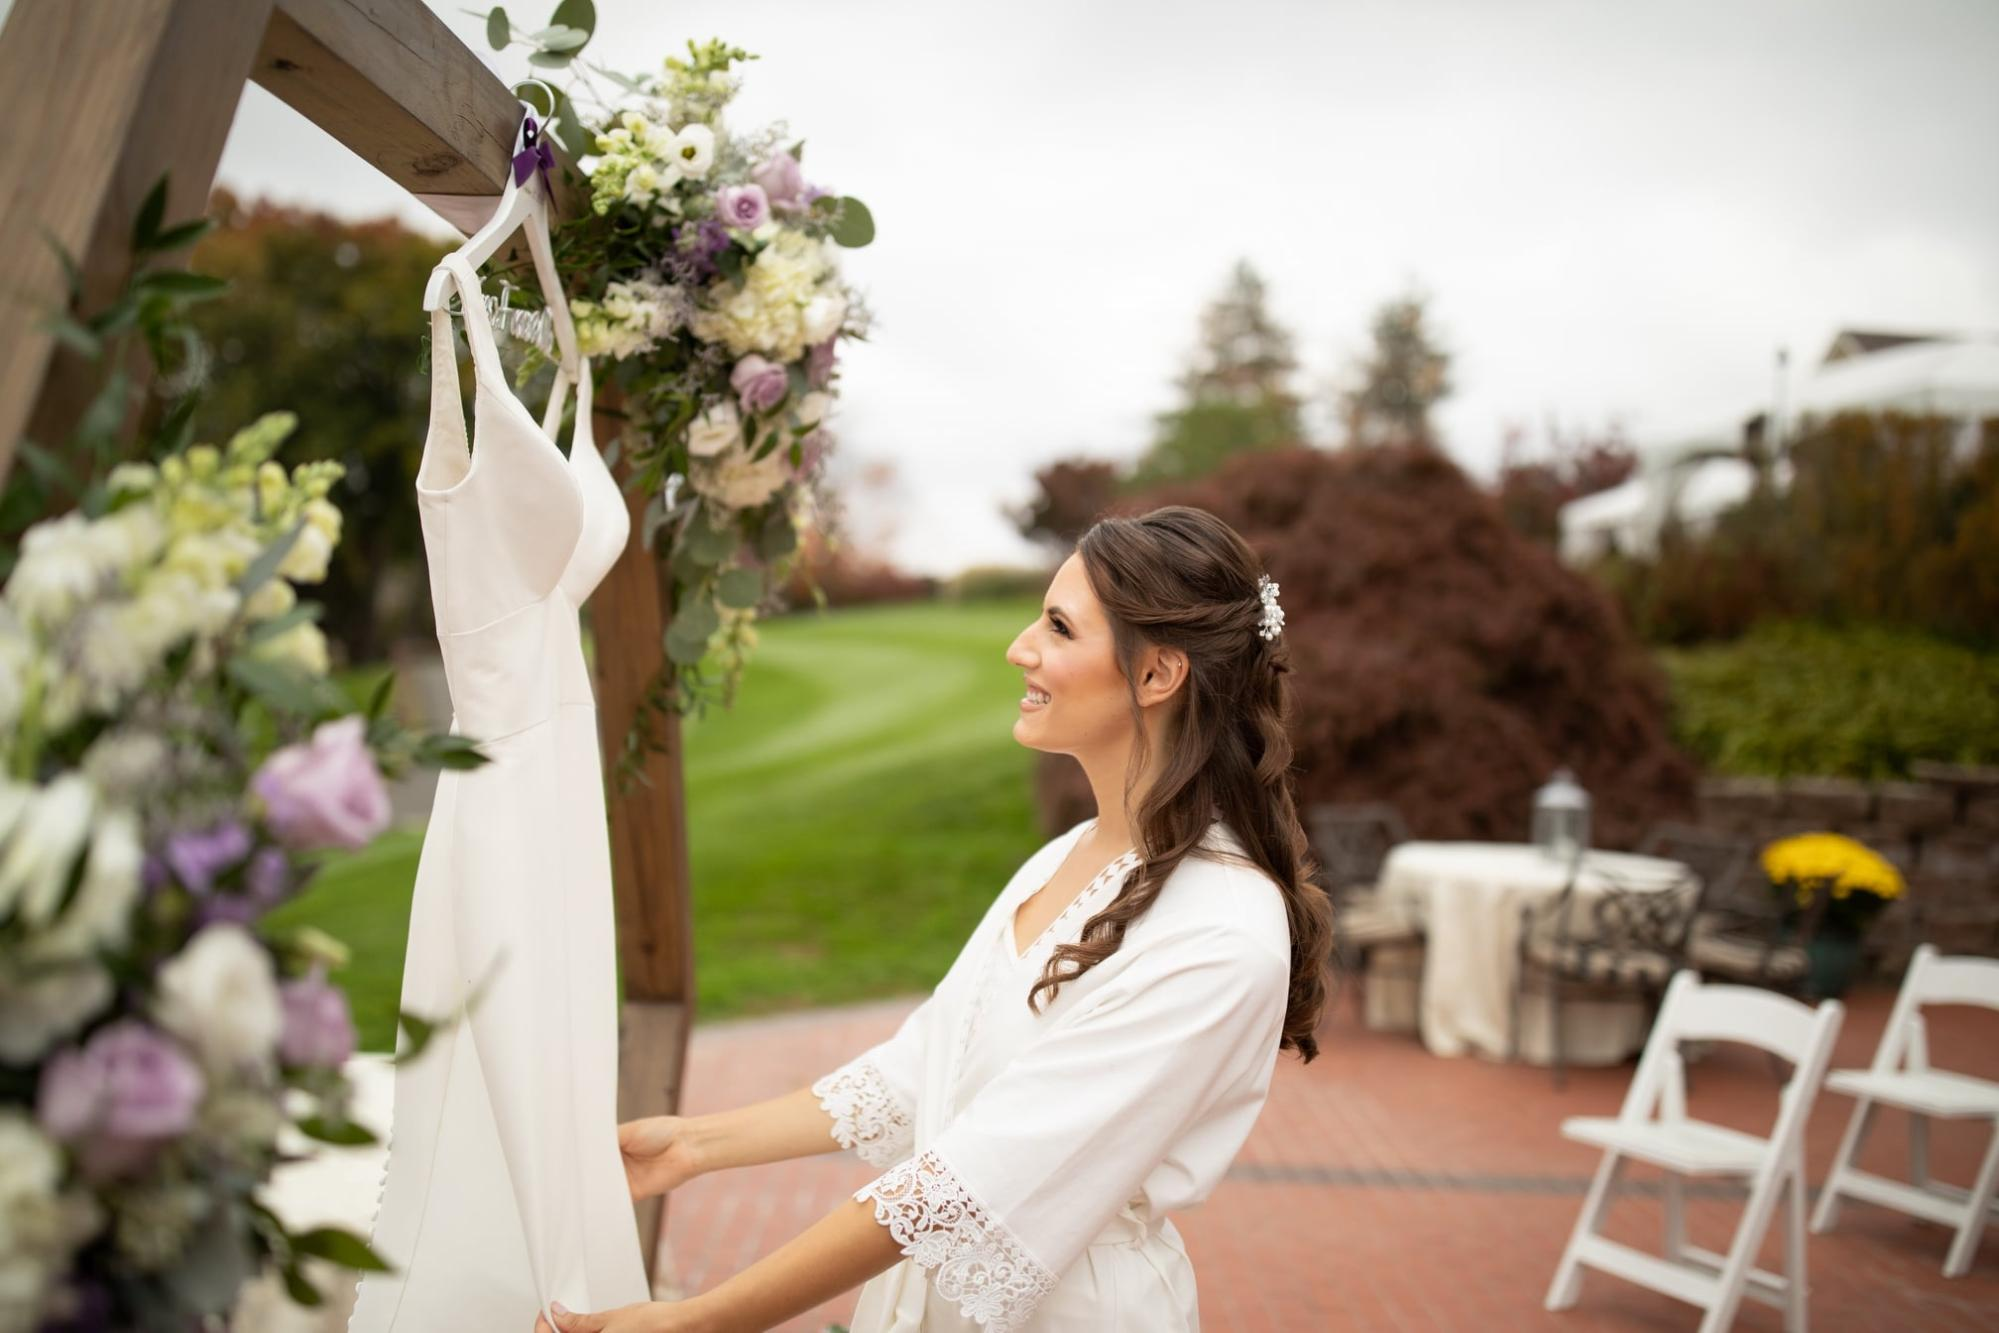 Bride on wedding day at outdoor ceremony and reception in Northern NJ at Brooklake